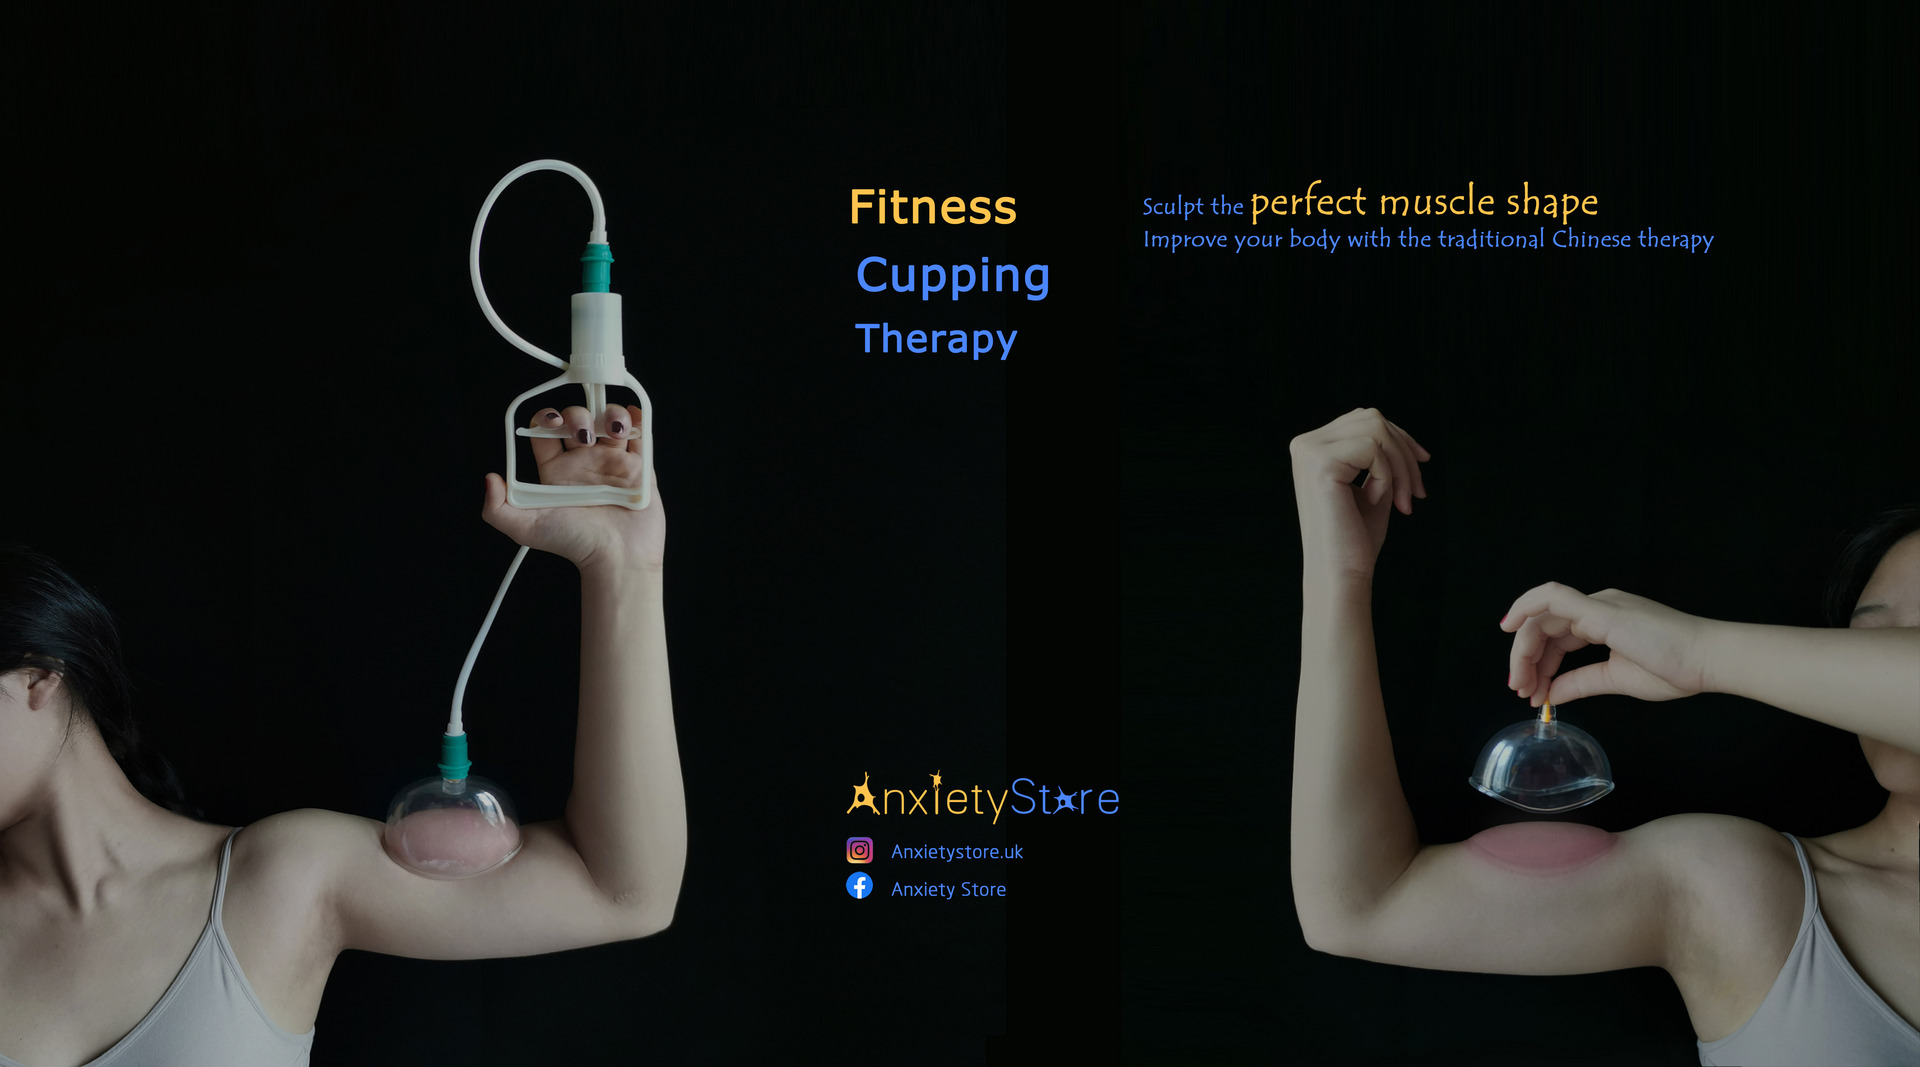 A poster of fitness cupping therapy